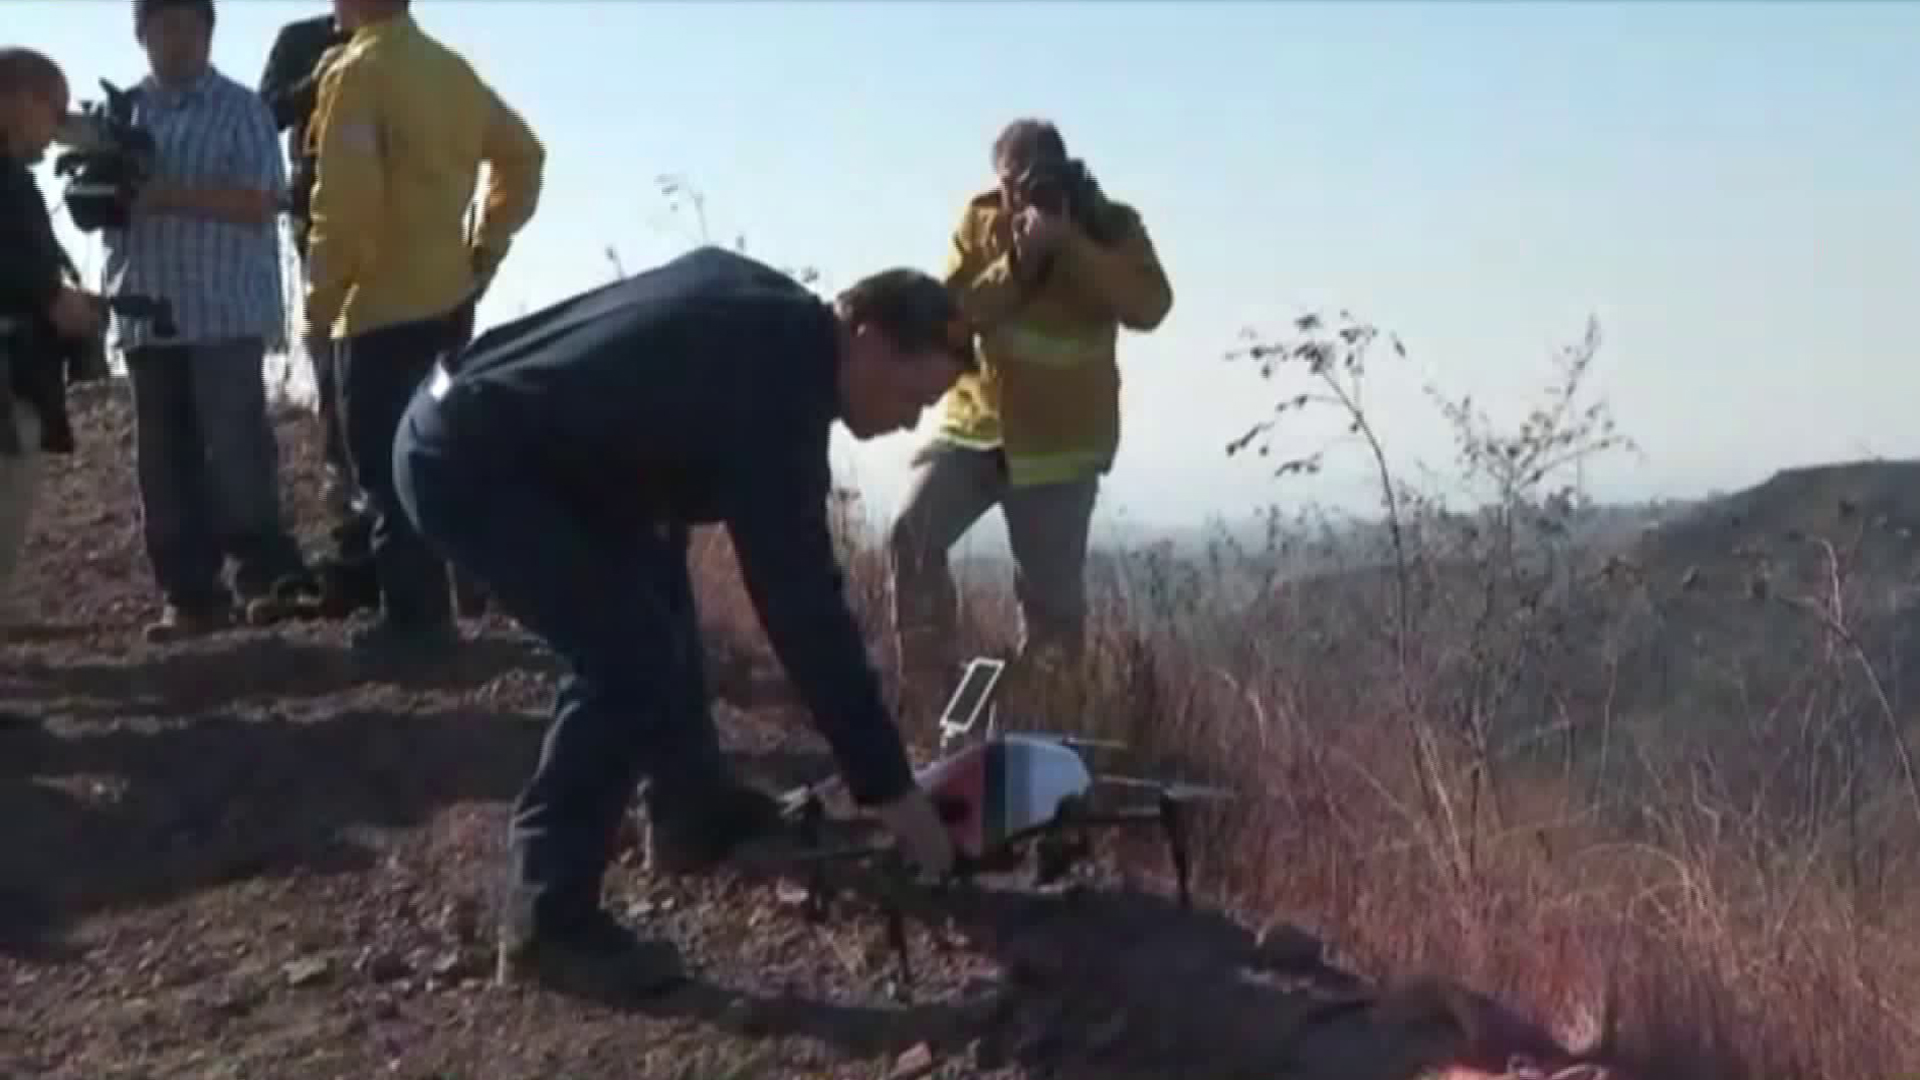 Los Angeles Fire Department officials display one of the agency's drones on Dec. 14, 2017, in Bel-Air, near where the Skirball Fire burned. (Credit: KTLA)